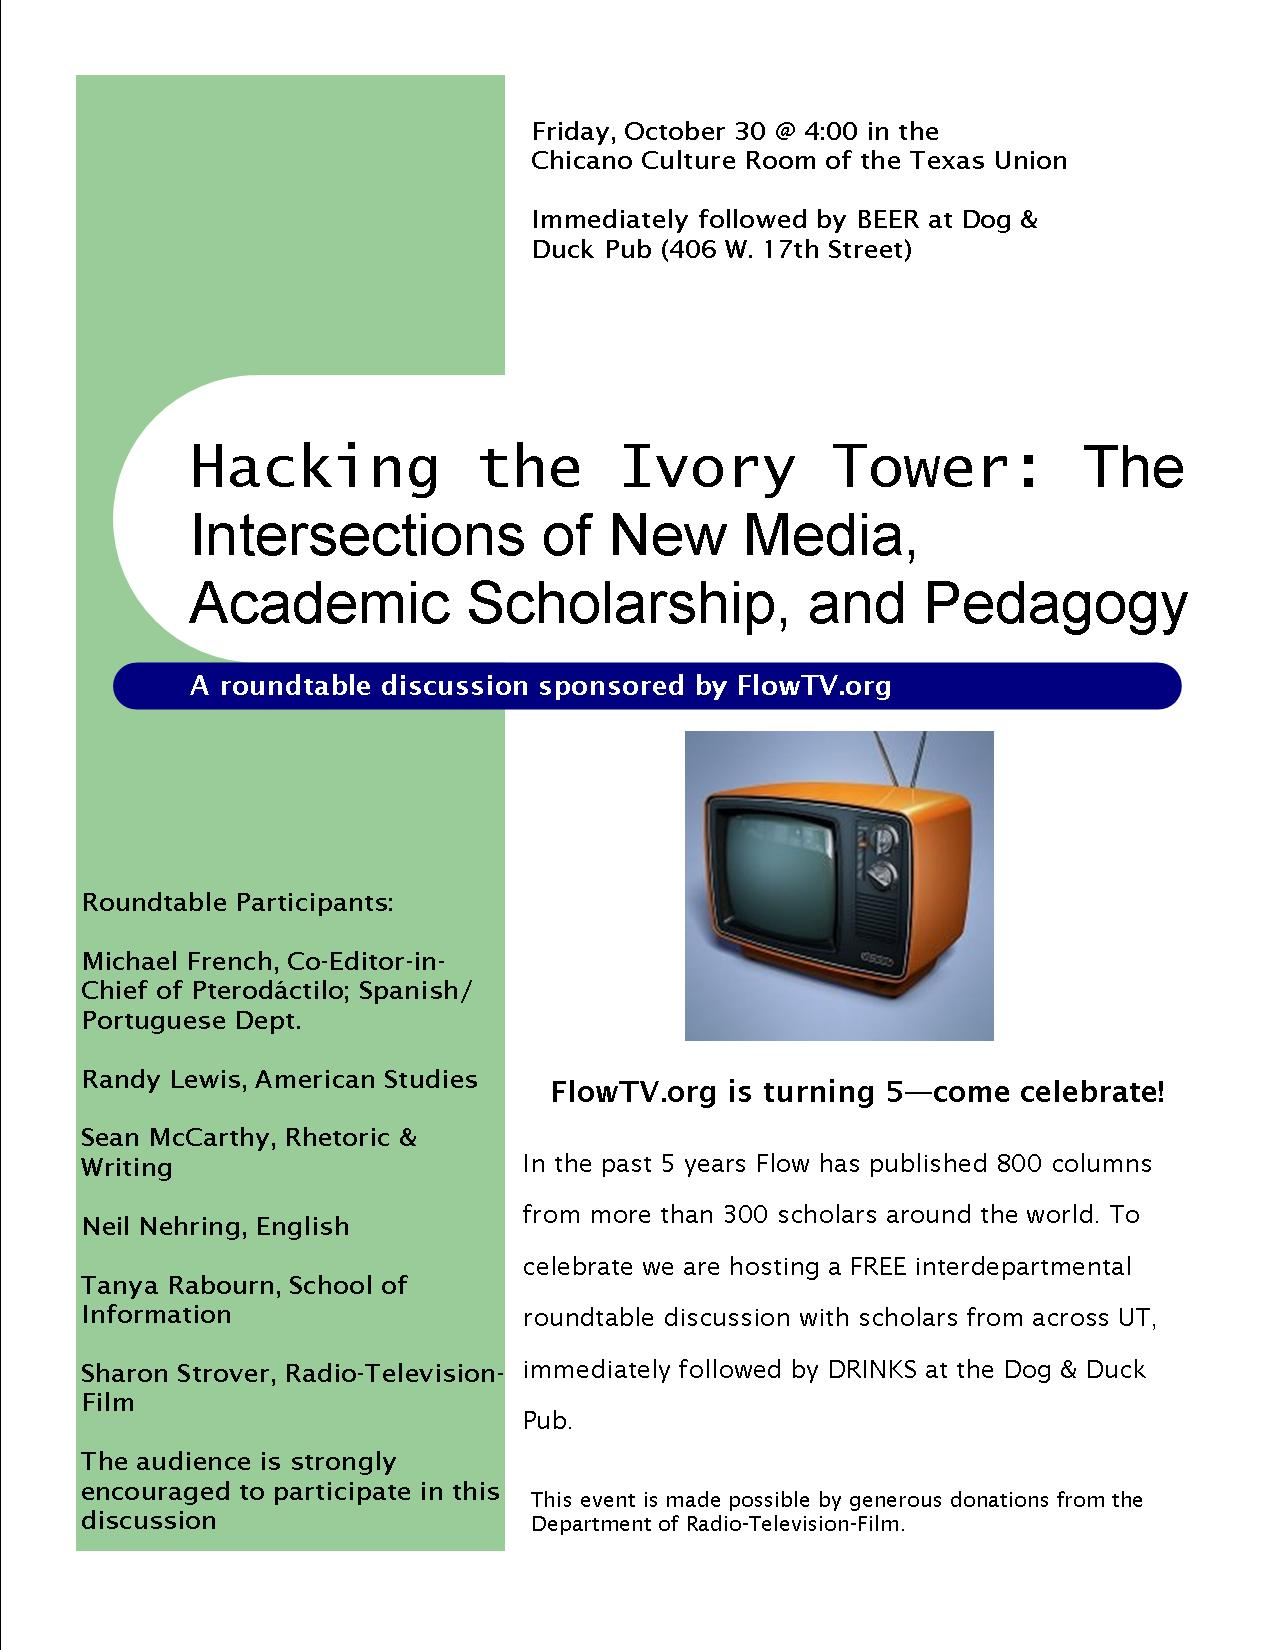 Round table discussion flyer - What Roundtable Discussion Titled Hacking The Ivory Tower The Intersections Of New Media Academic Scholarship And Pedagogy